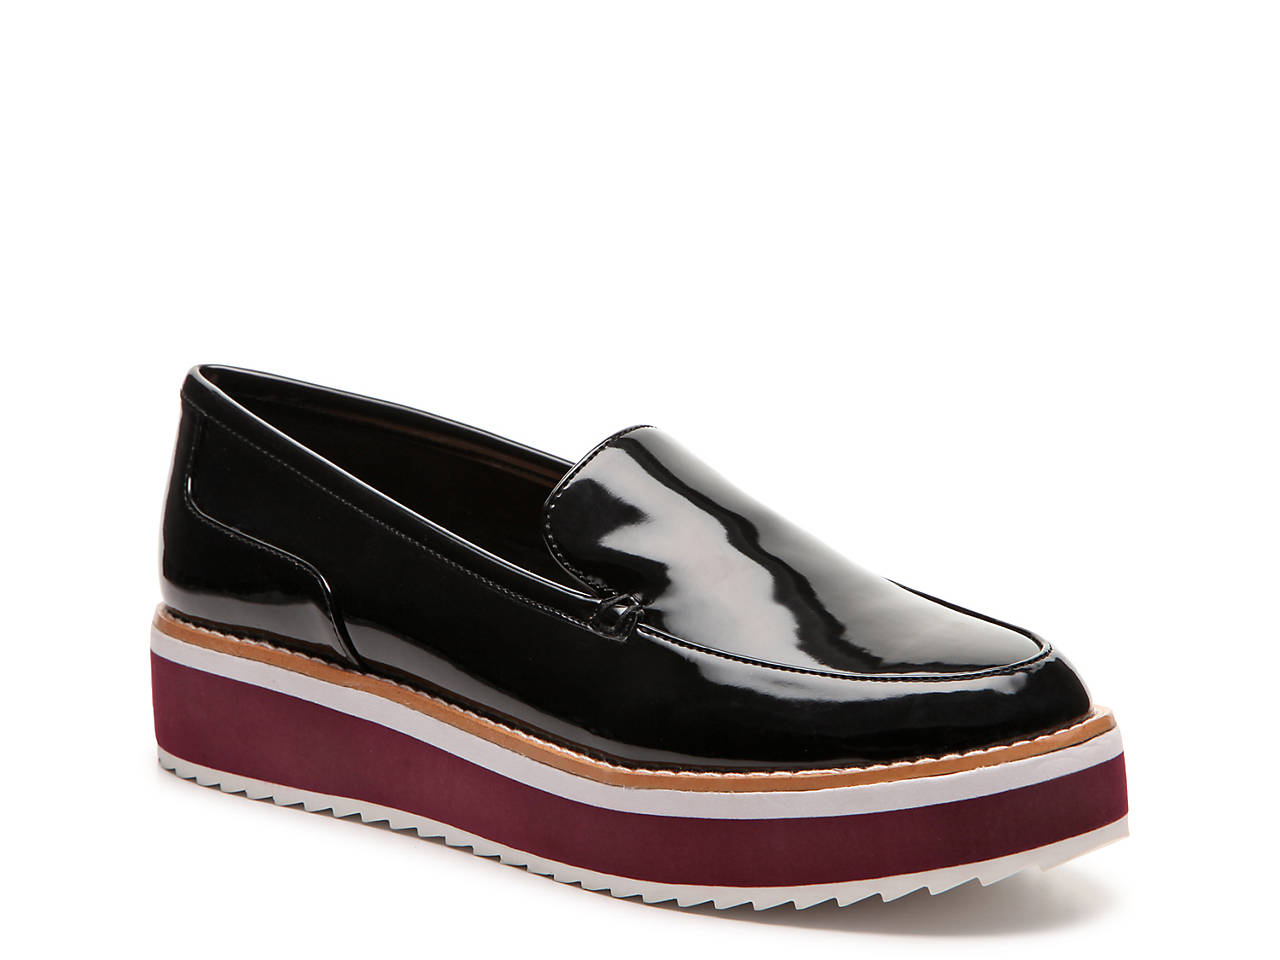 4e08e221887 Crown Vintage Mireicia Wedge Loafer Women s Shoes